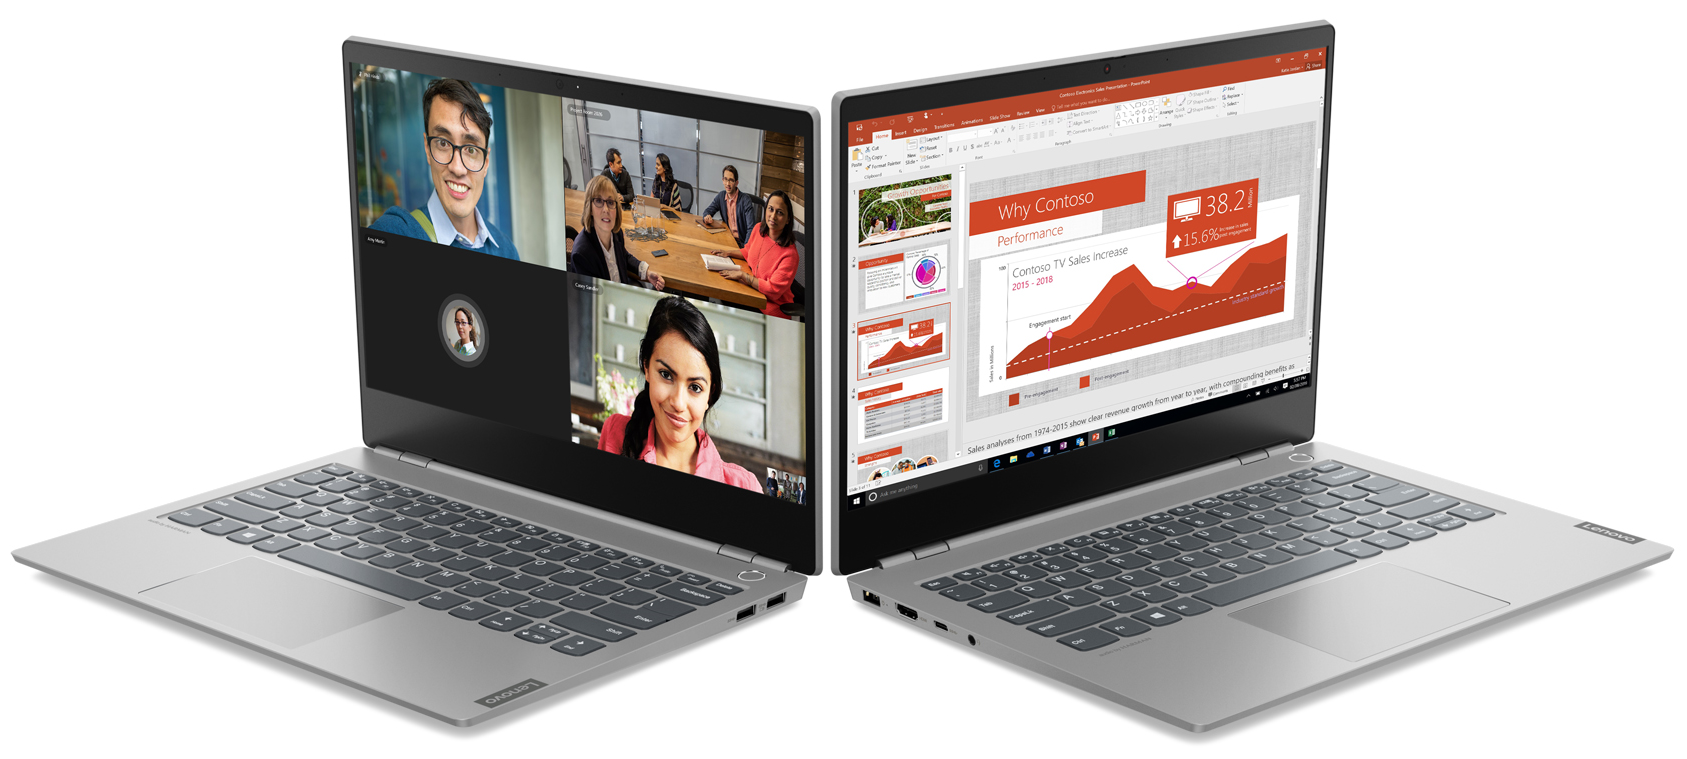 Lenovo's new ThinkBook S series—built for business